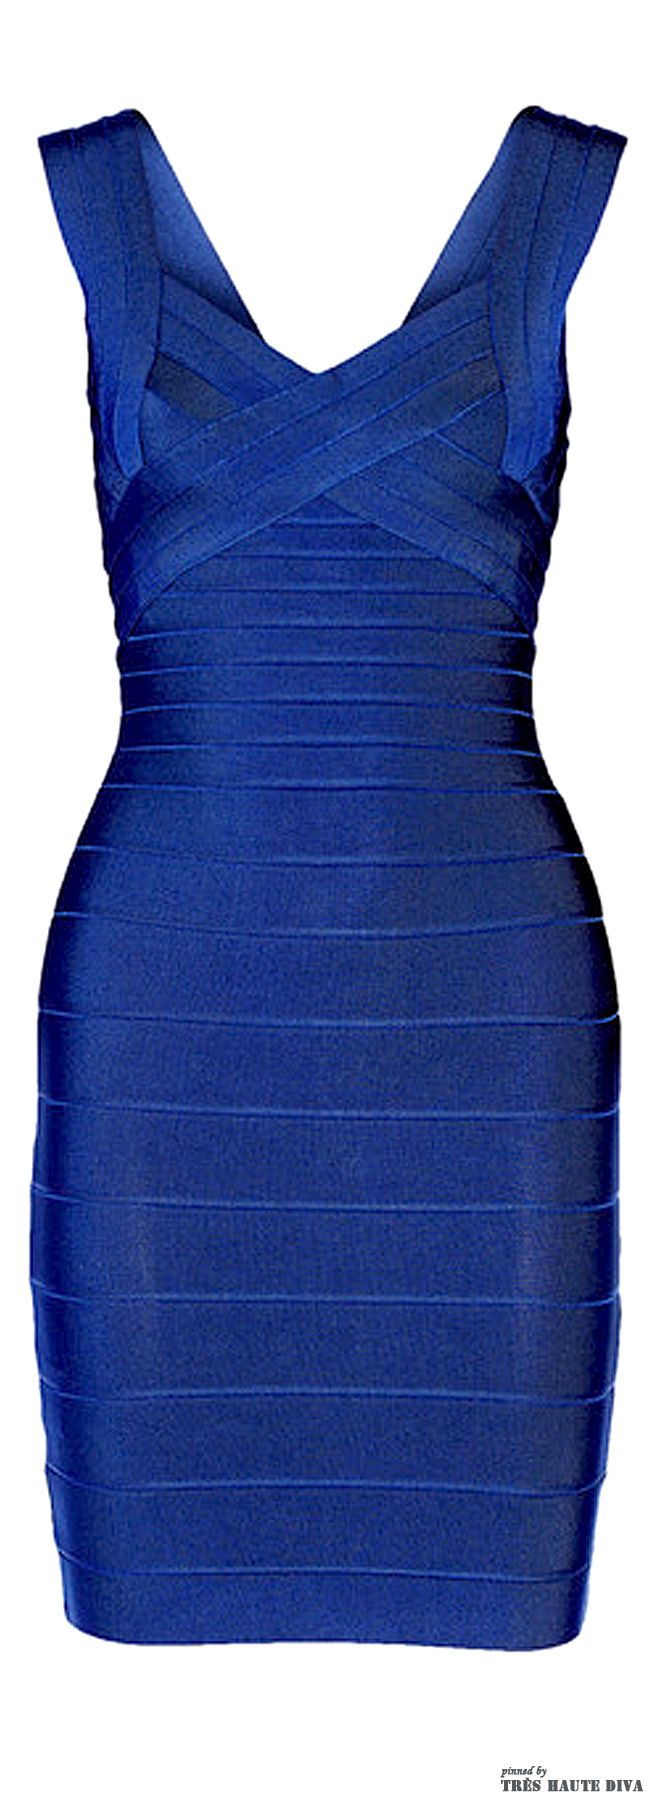 WHEN will I get one of these???? Herve Leger bandage dress